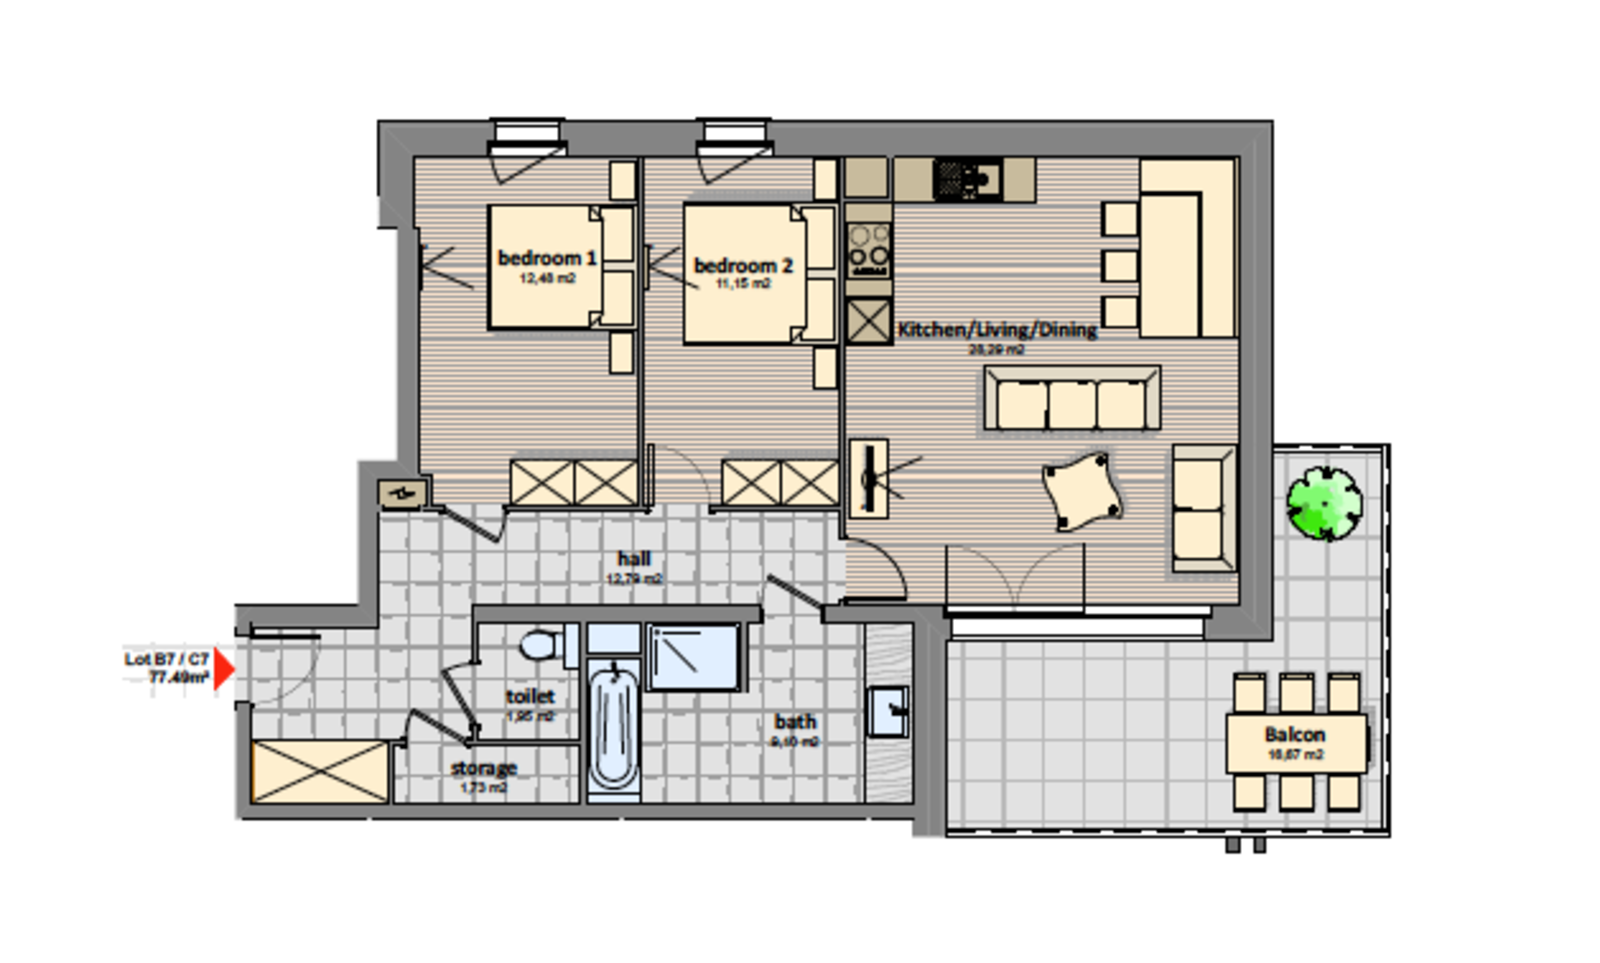 Luxury 3 room apartment | 4 Pers.